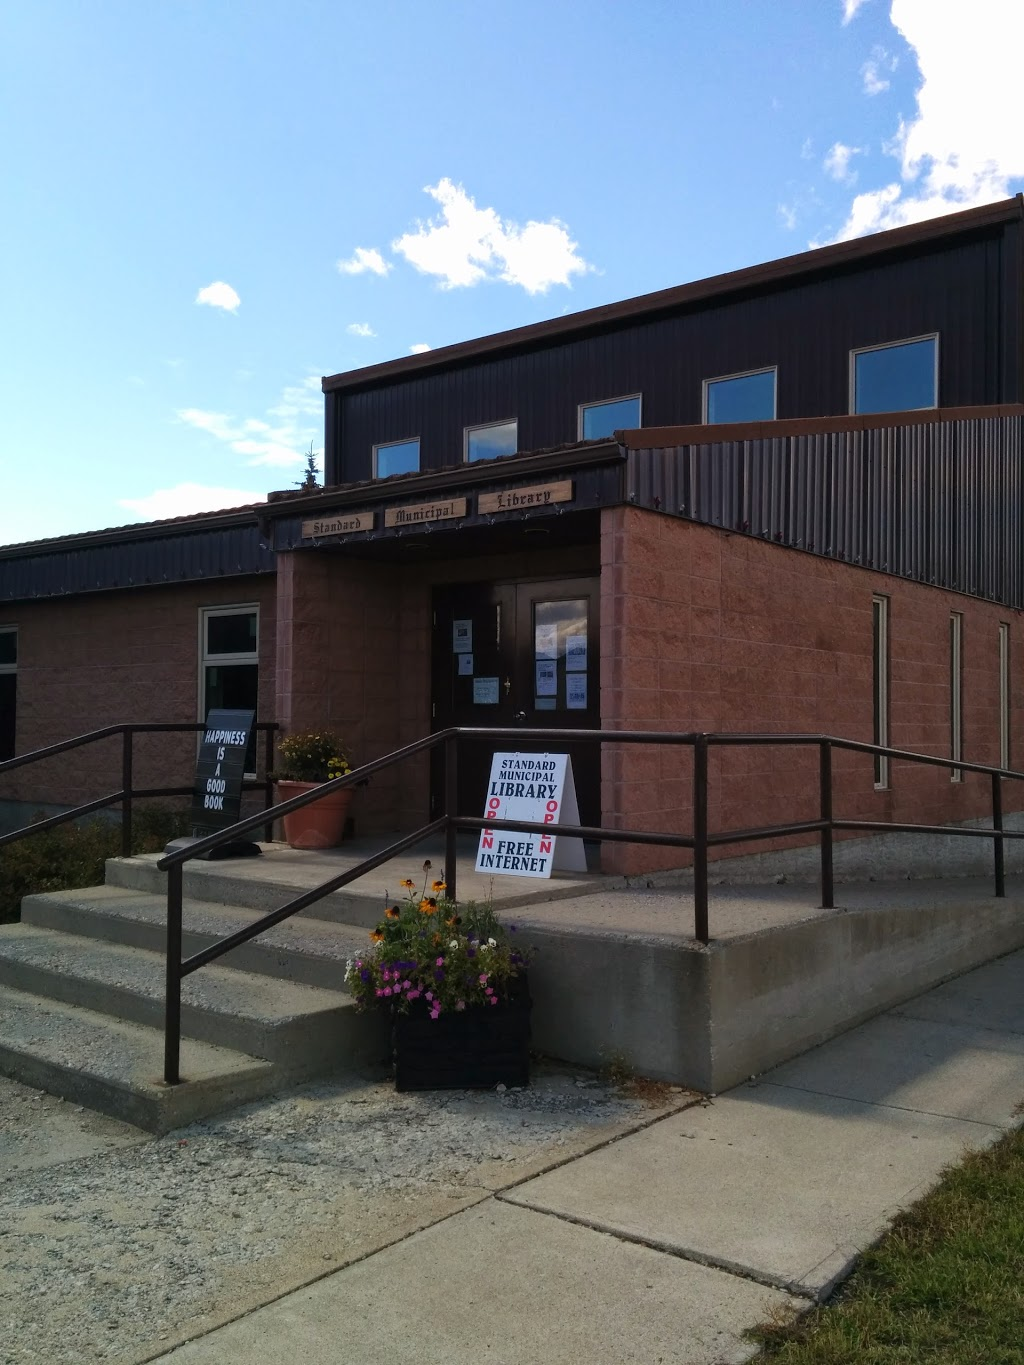 Standard Municipal Library | library | 822 The Broadway, Standard, AB T0J 3G0, Canada | 4036443995 OR +1 403-644-3995